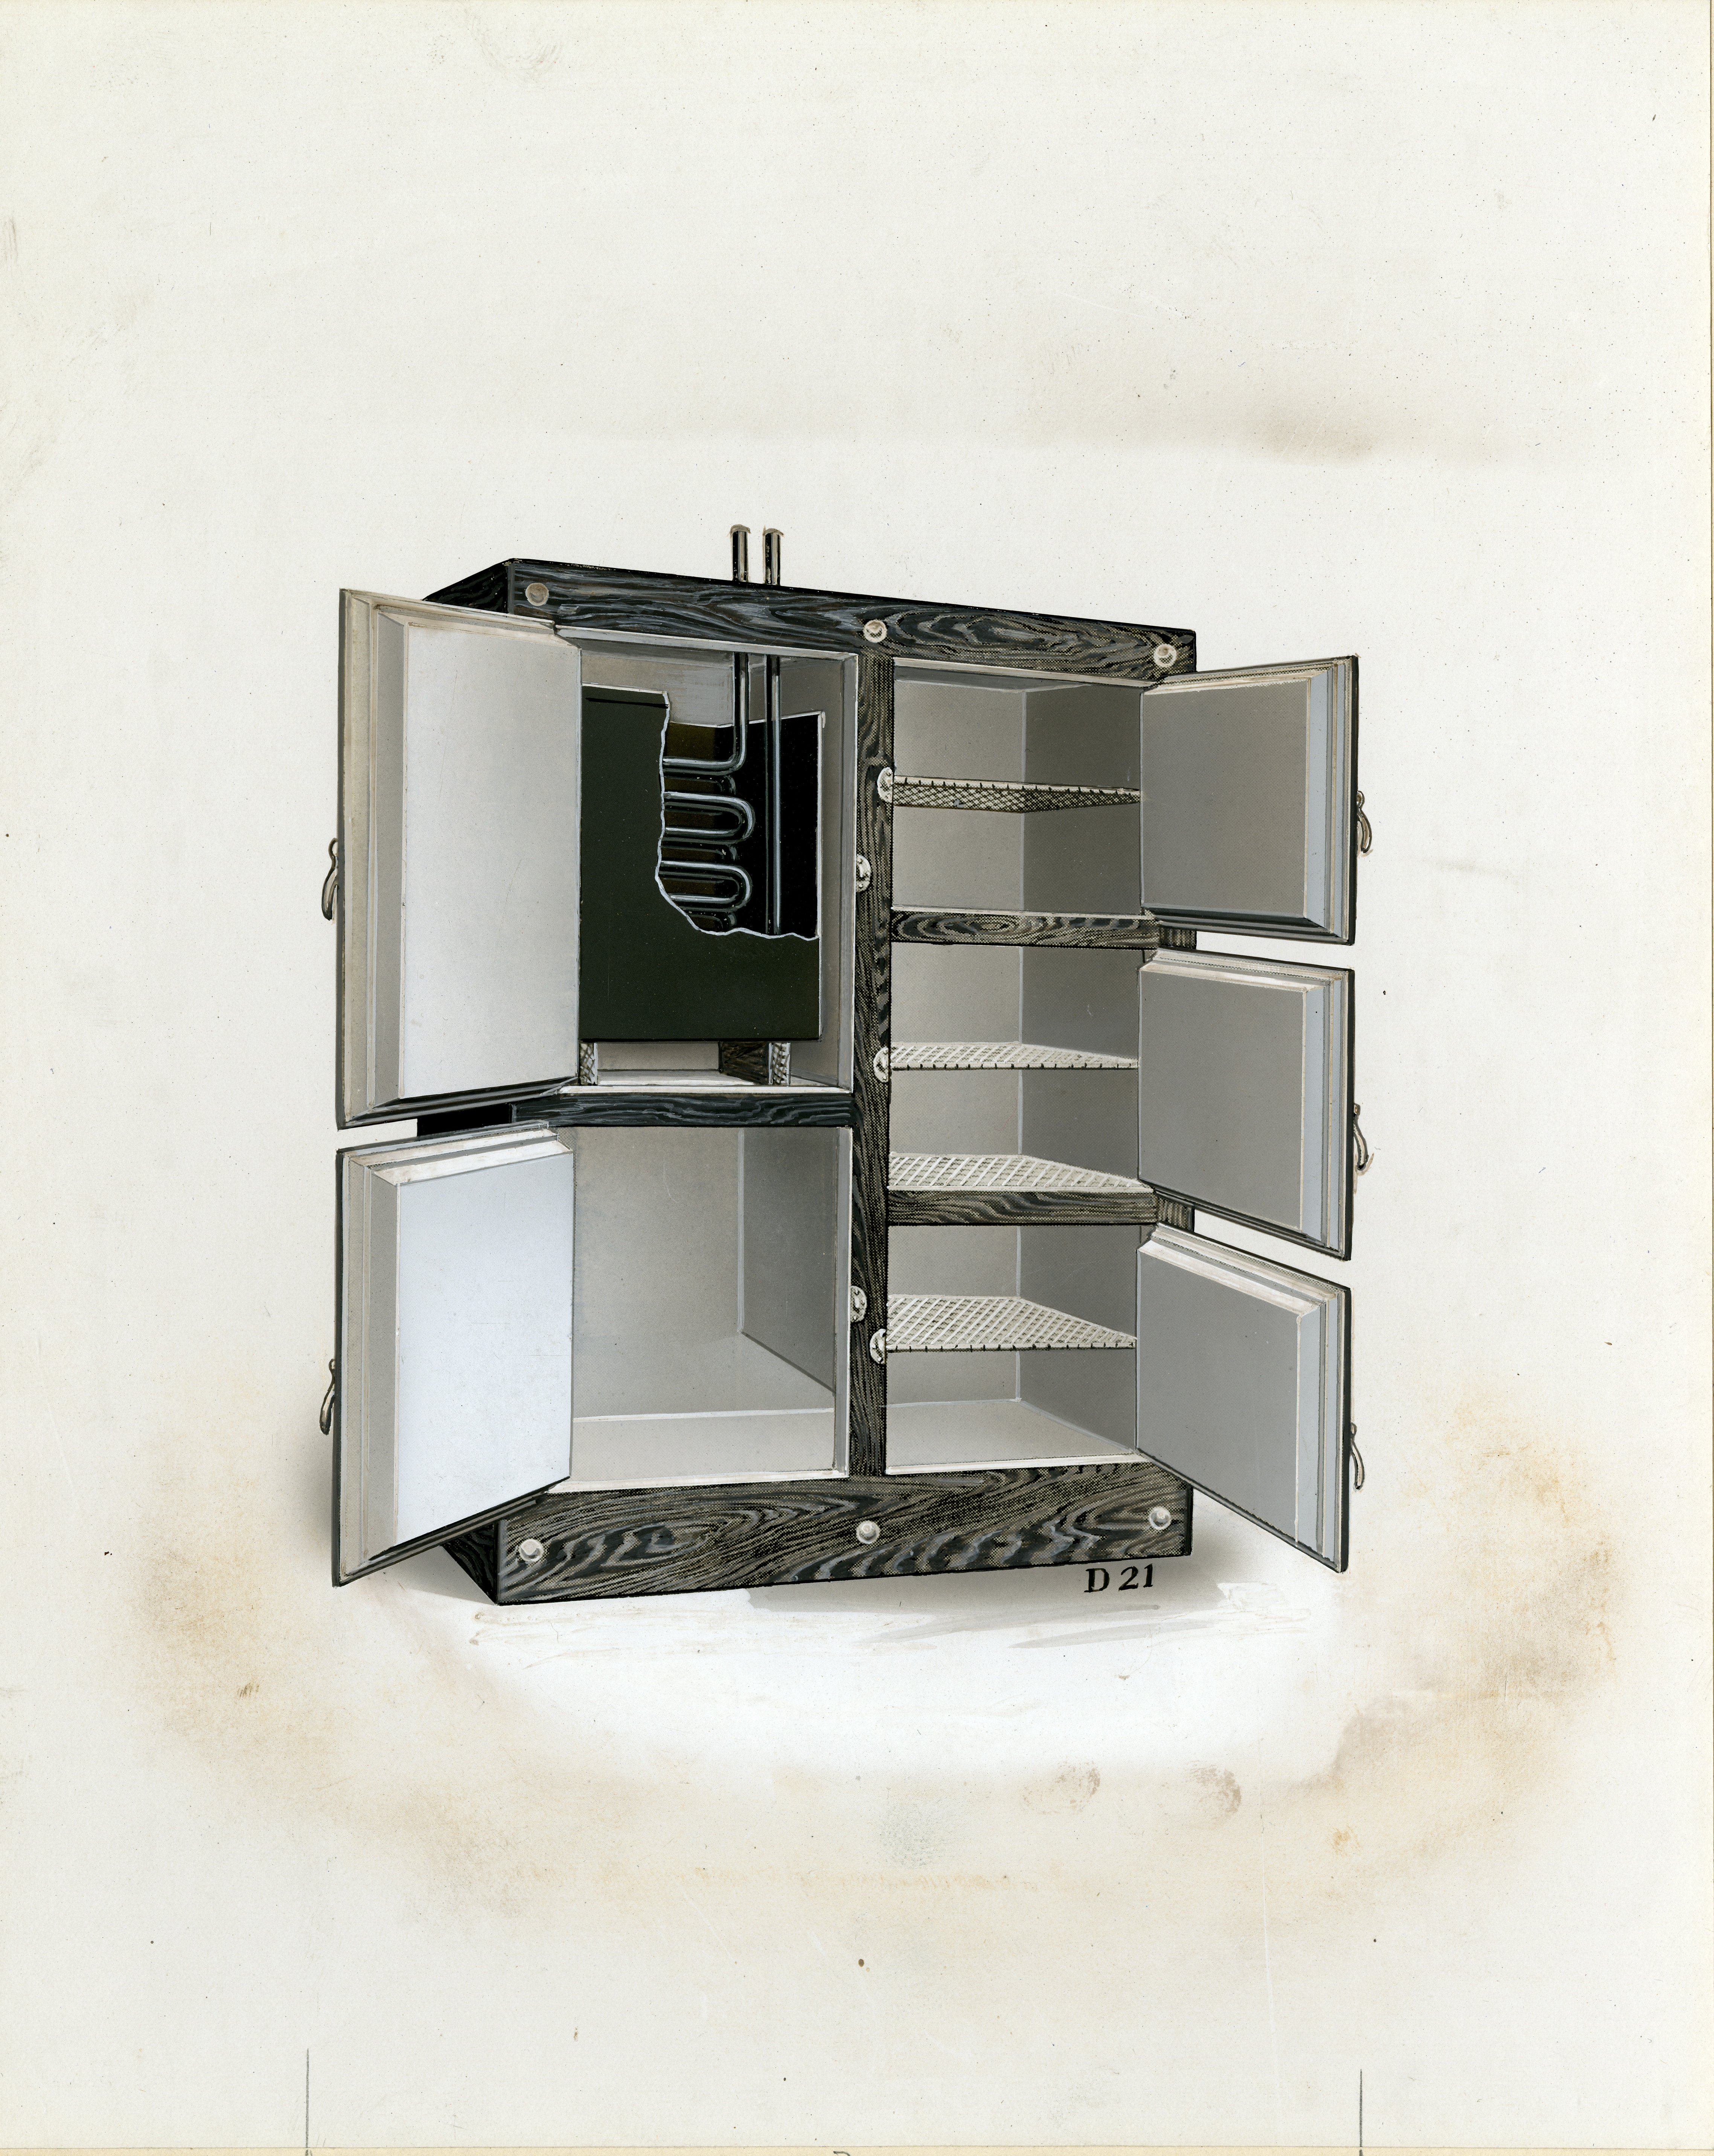 Early refrigerator, the familiar ice block compartment (upper left) replaced with a mechanical cooling unit, circa 1940s. (AC0293-0000017)